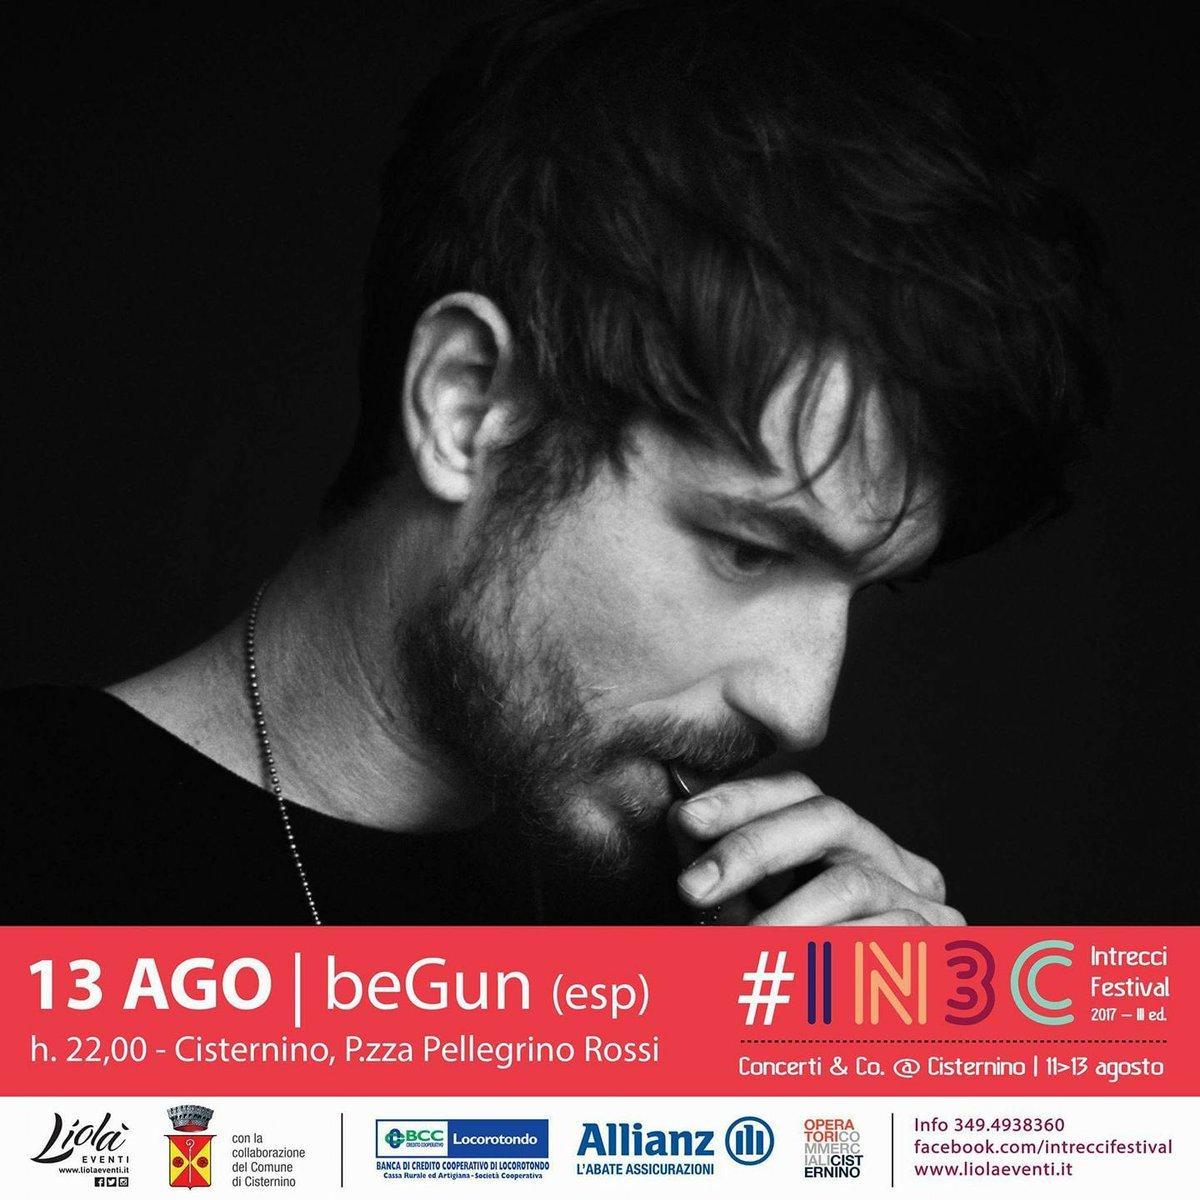 #beGun #IN3C #IntrecciFestival #13agosto #Cisternino #LiolaEventi #livemusic #valleditria #Puglia https://t.co/bMGeyqDlH1